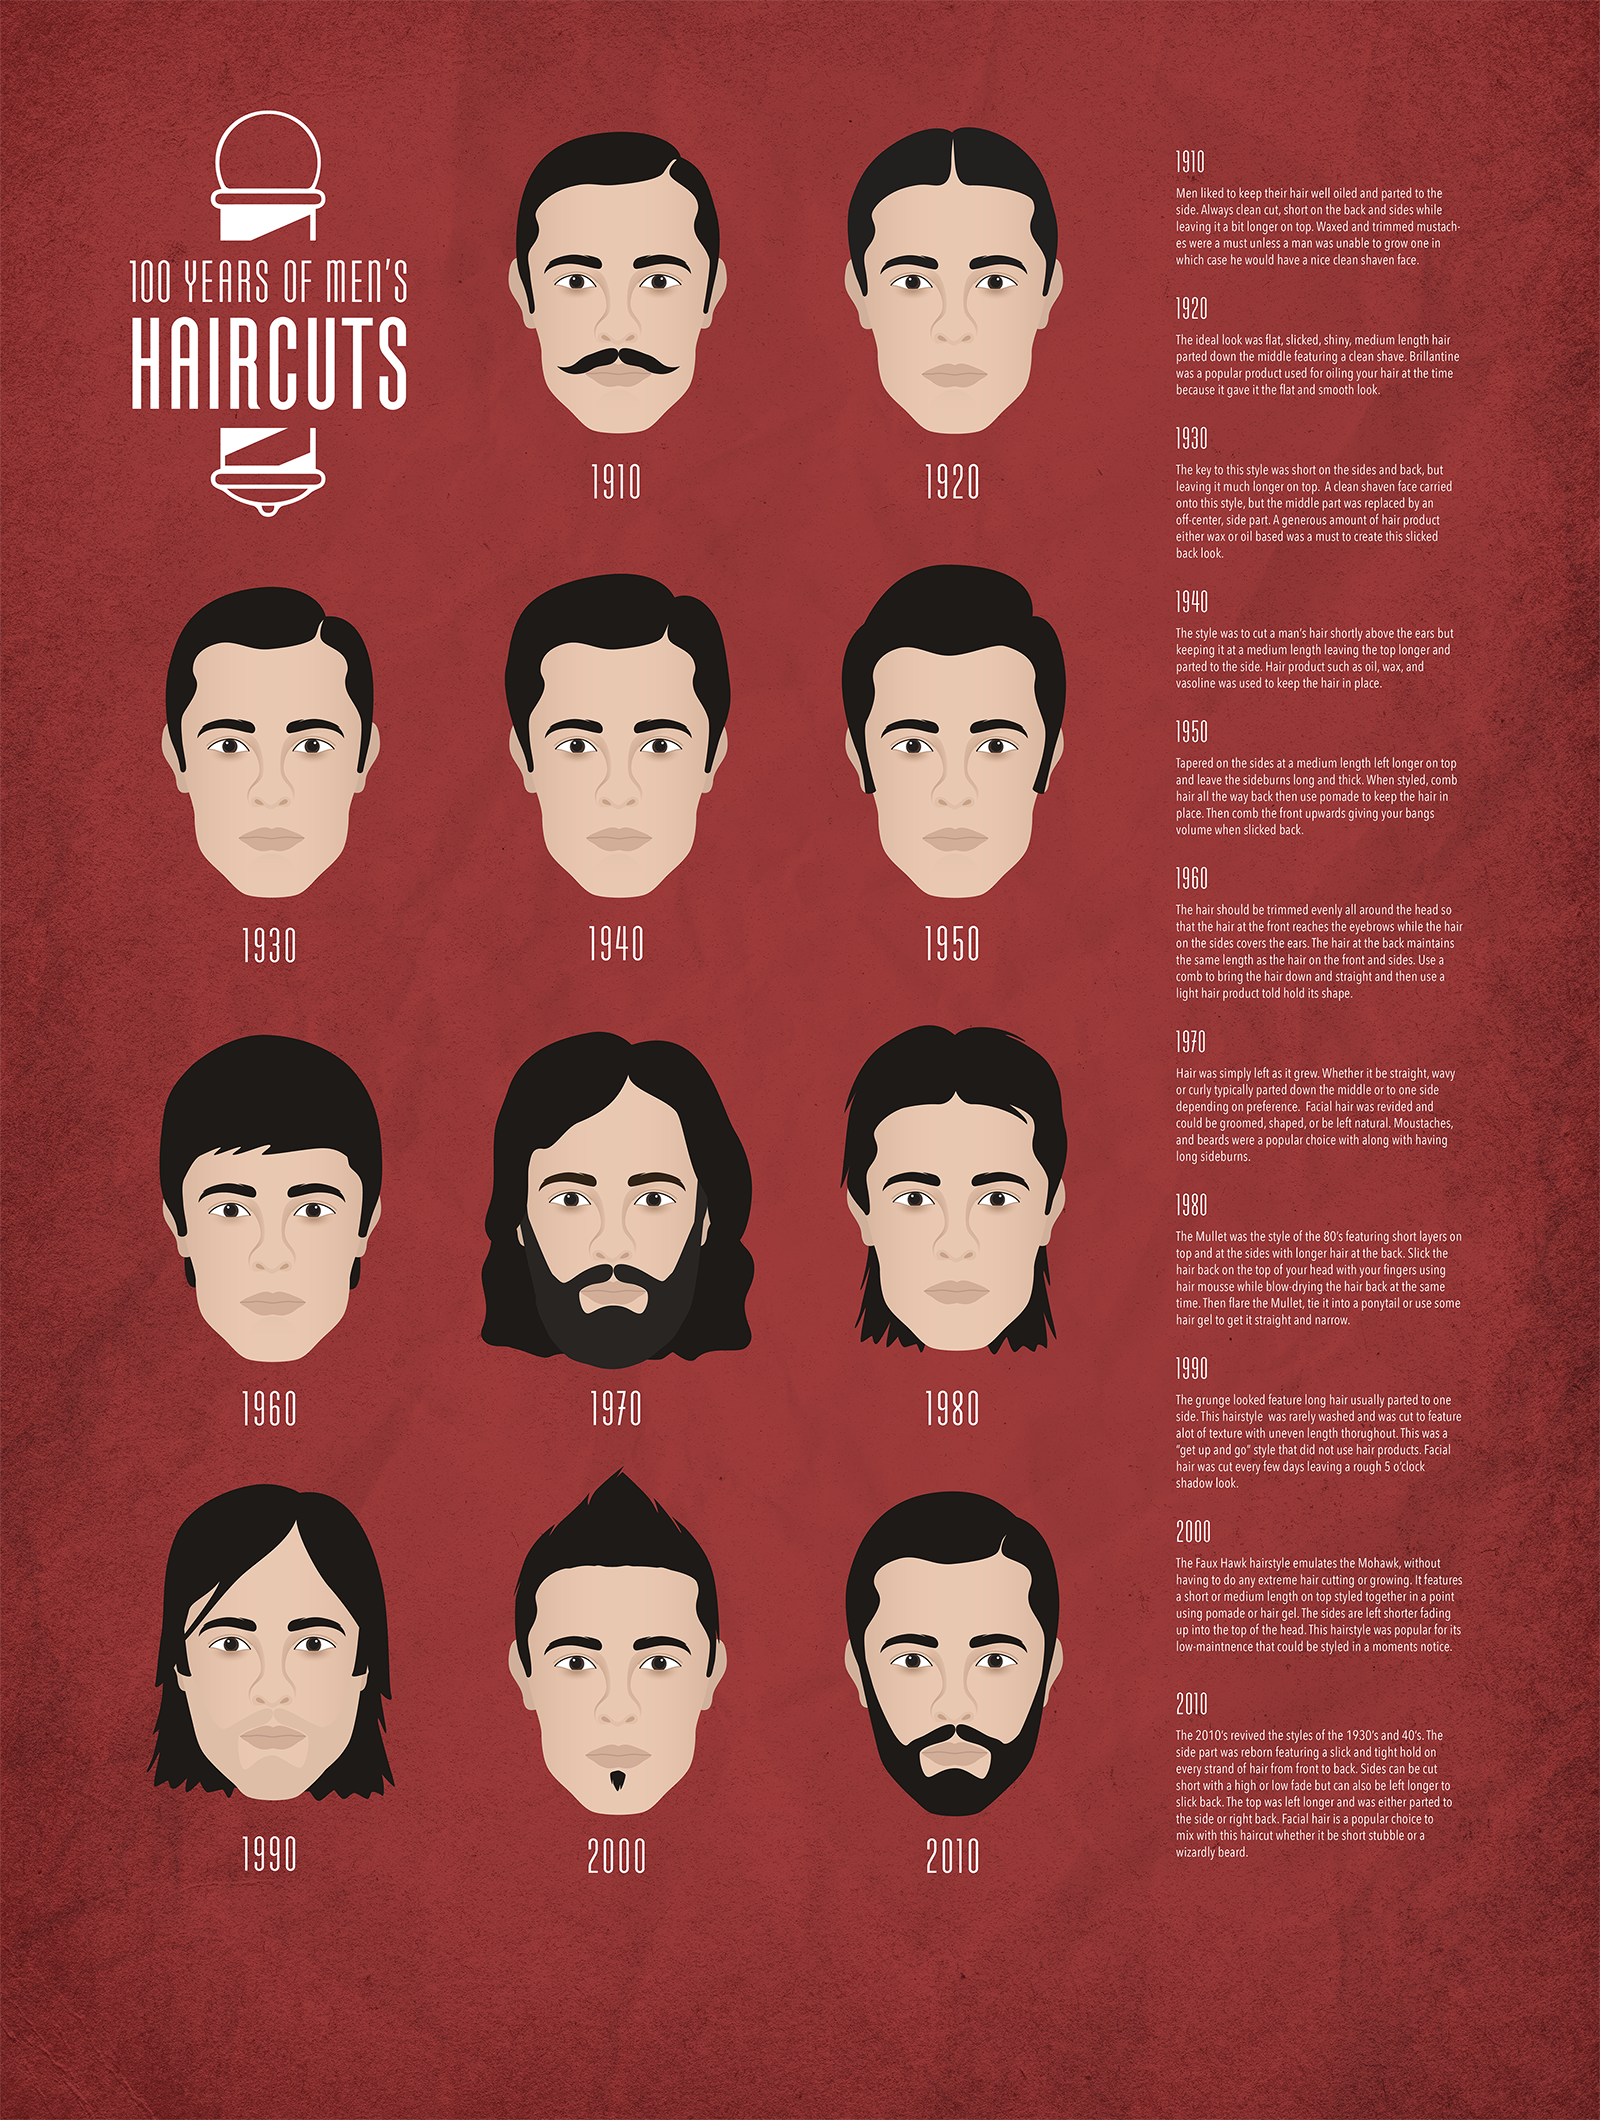 100 Years of Men's Haircuts - This infographic poster shows the progression of men's haircuts over the last 100 years with details on how to cut and style each haircut